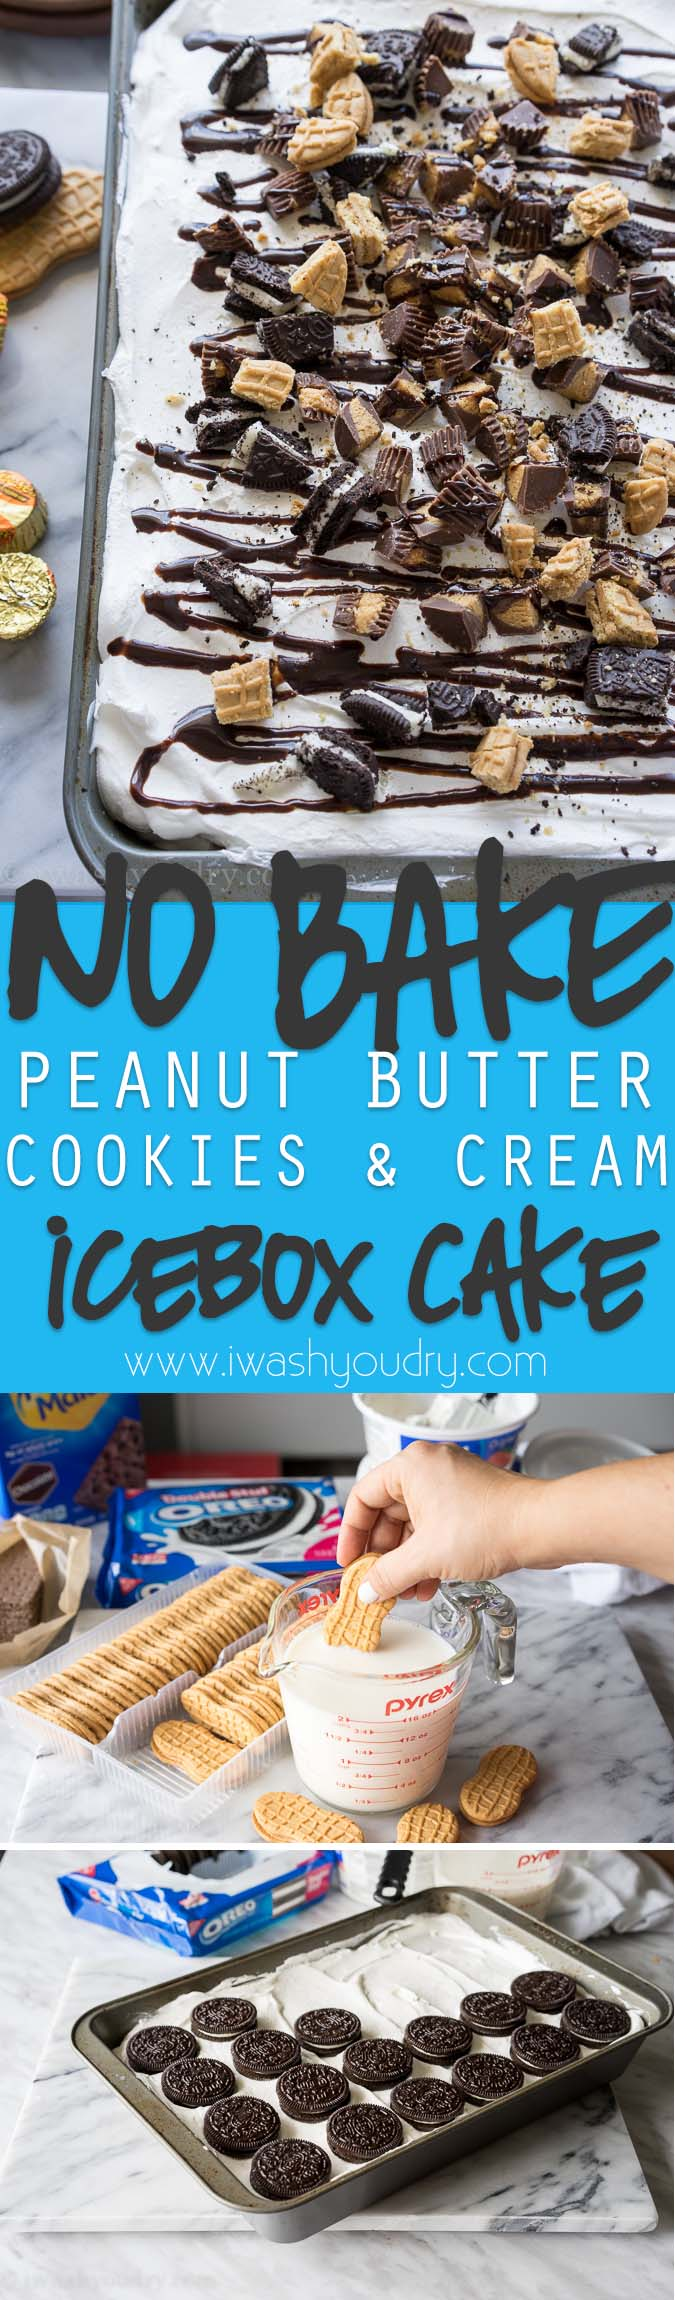 Insanely delicious - No Bake Peanut Butter Cookies and Cream Icebox Cake!!